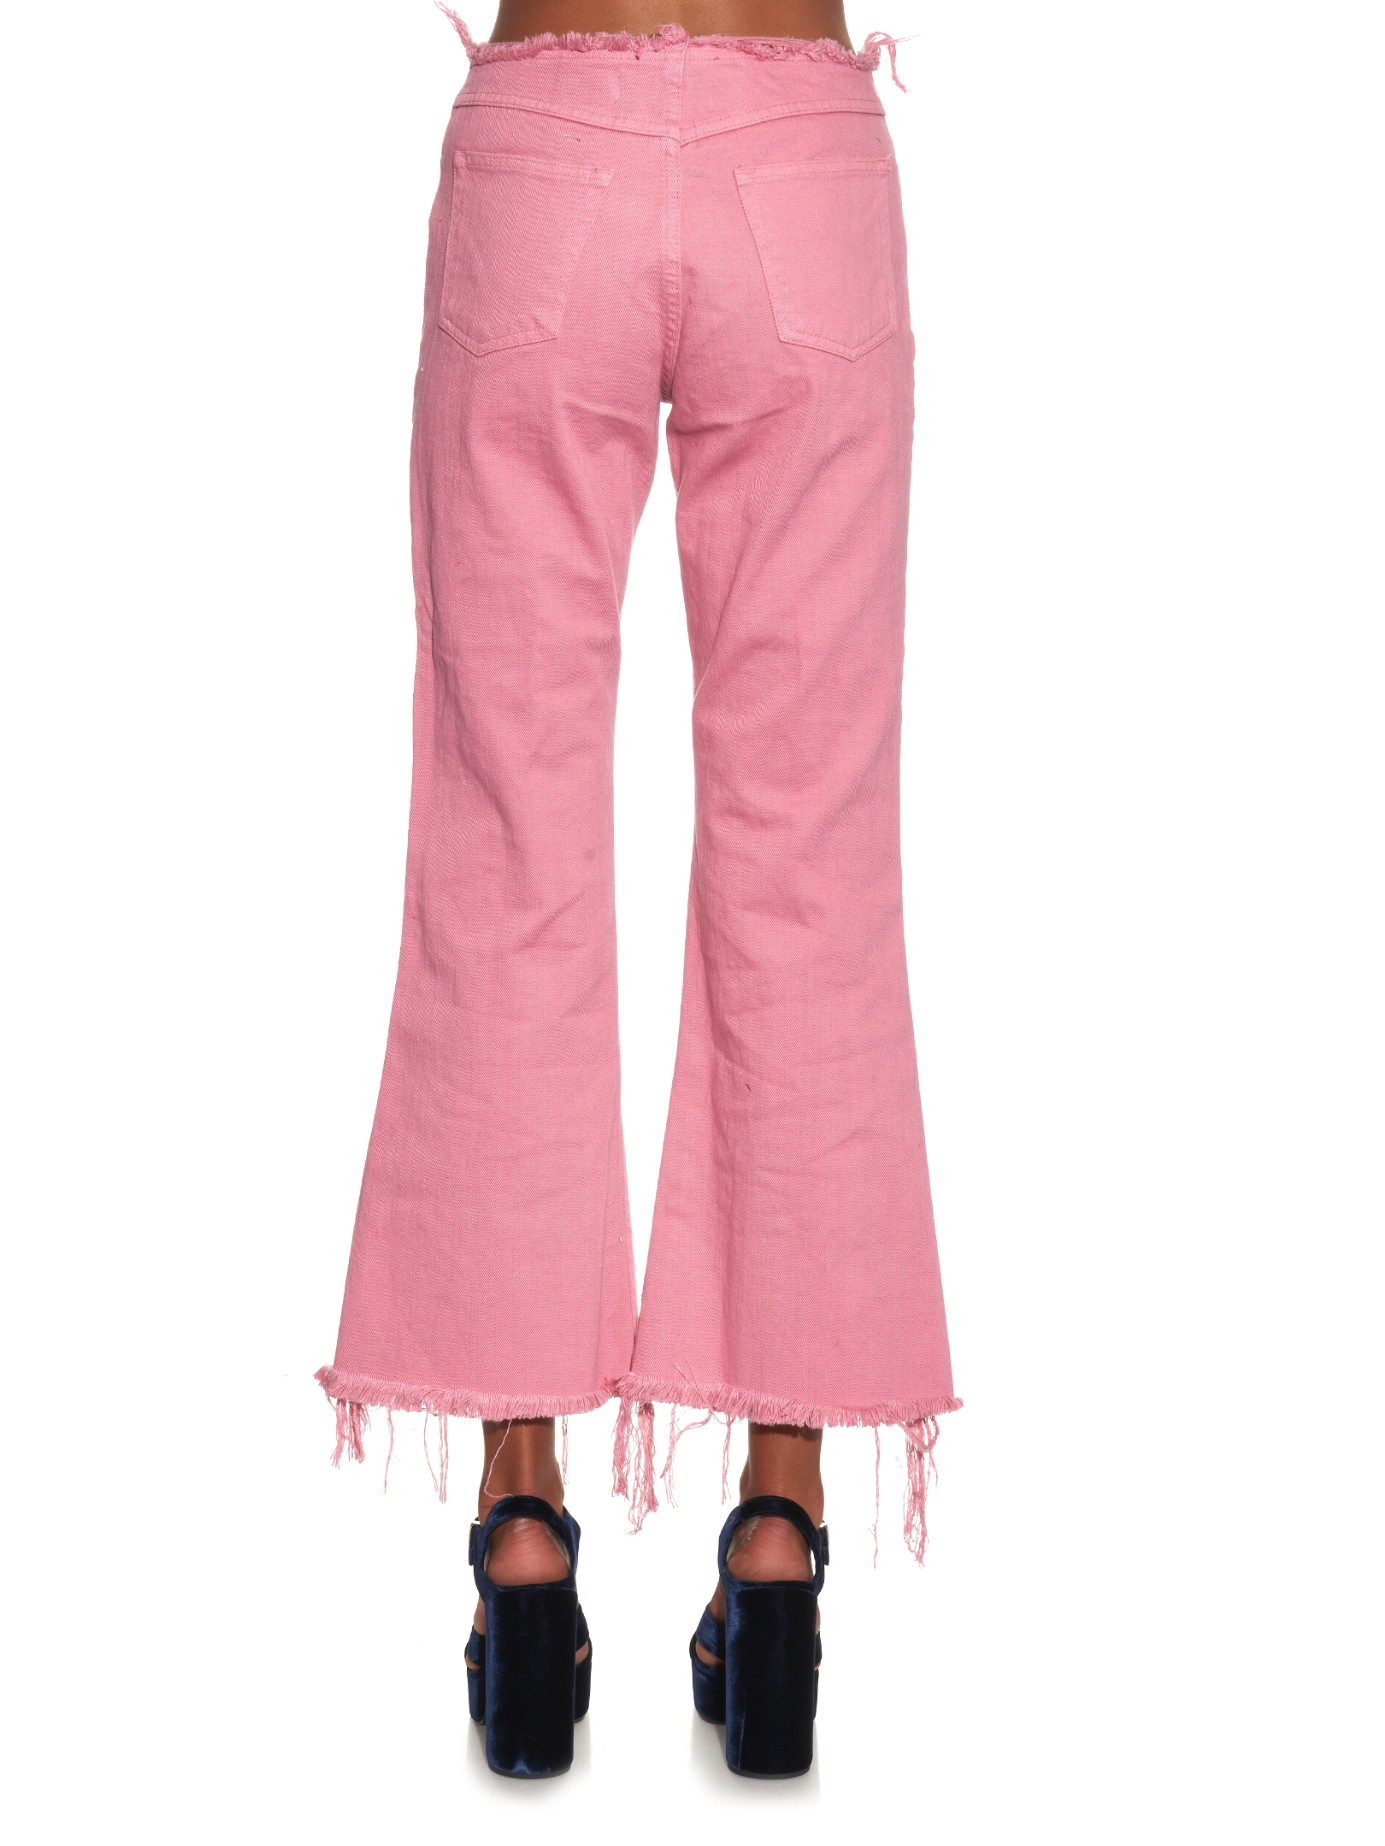 Marques'almeida Capri Frayed-edge Flared Jeans in Pink | Lyst